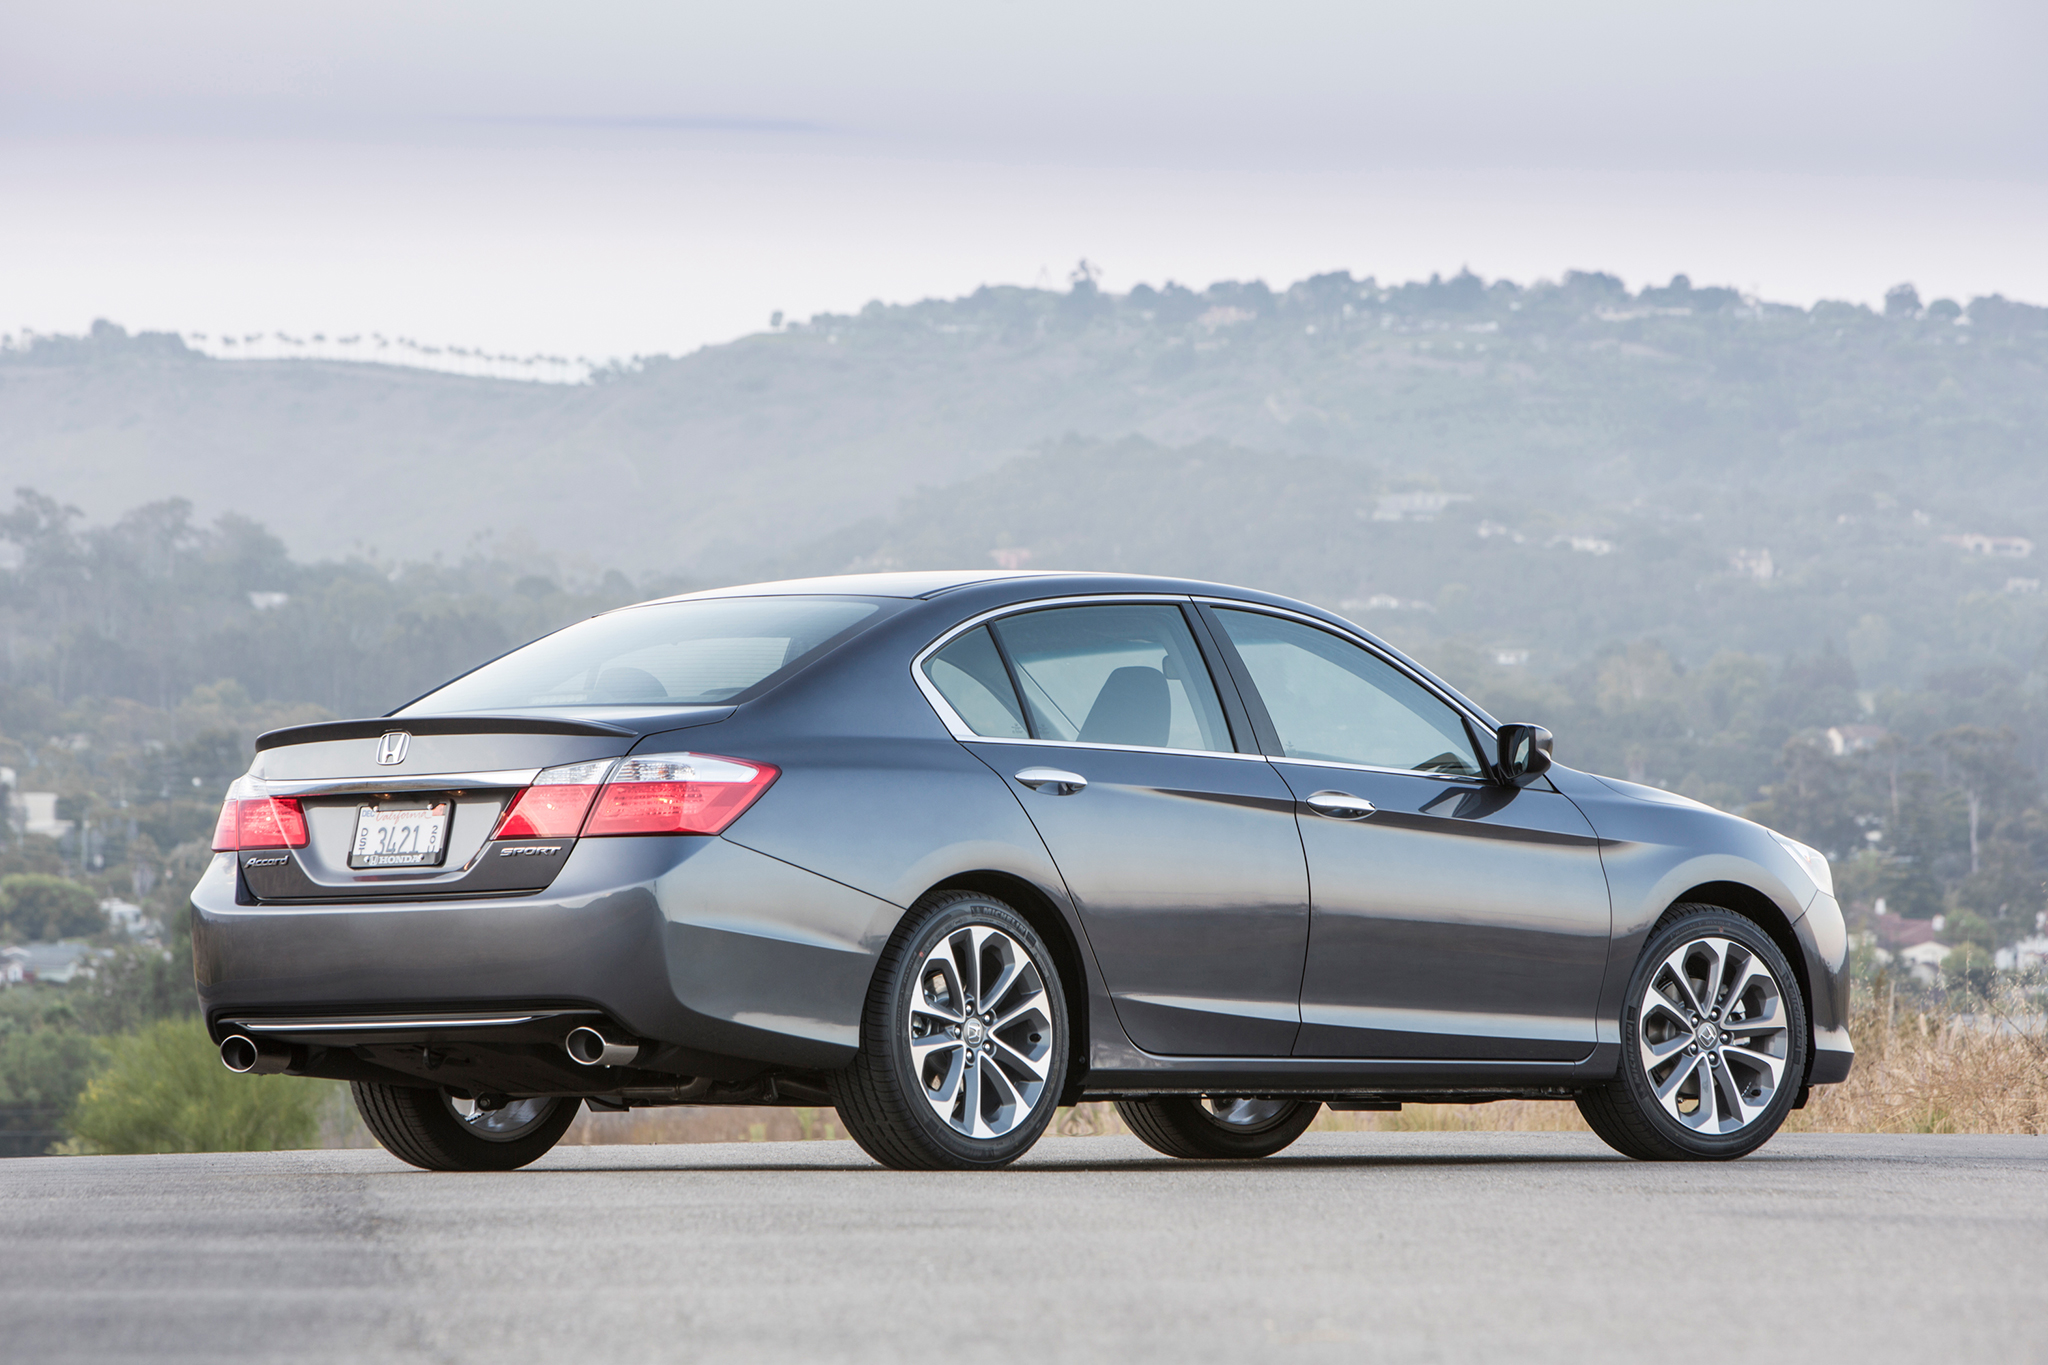 2015 Honda Accord Prices Rise $150